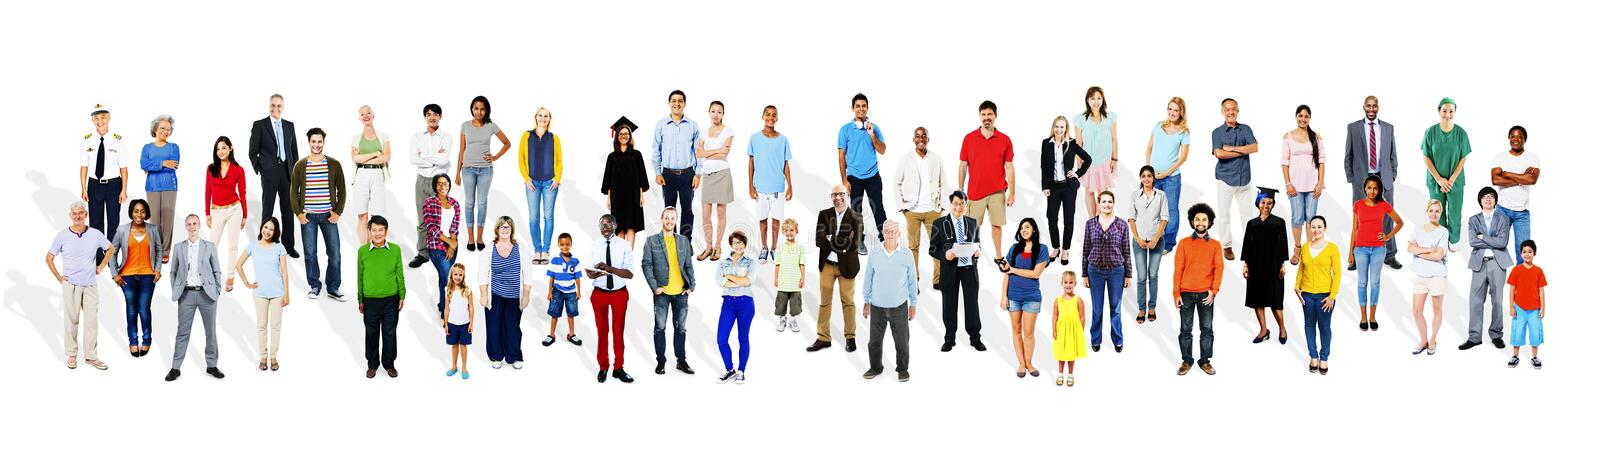 Diverse Crowd People Marketing Brand Concept stock image